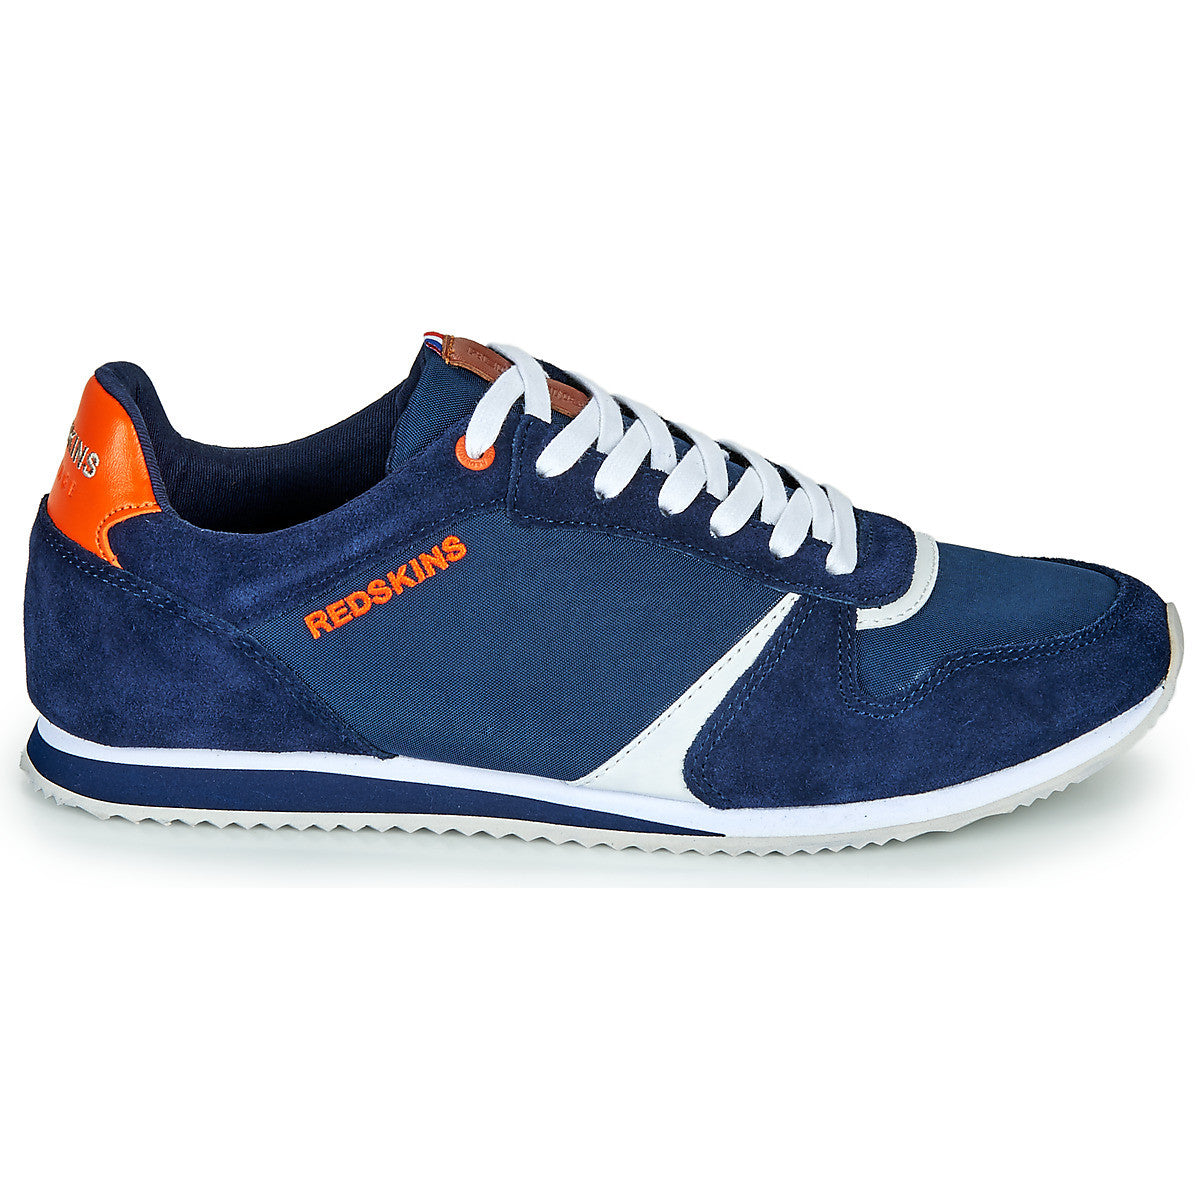 Men's Casual Sneakers | Navy